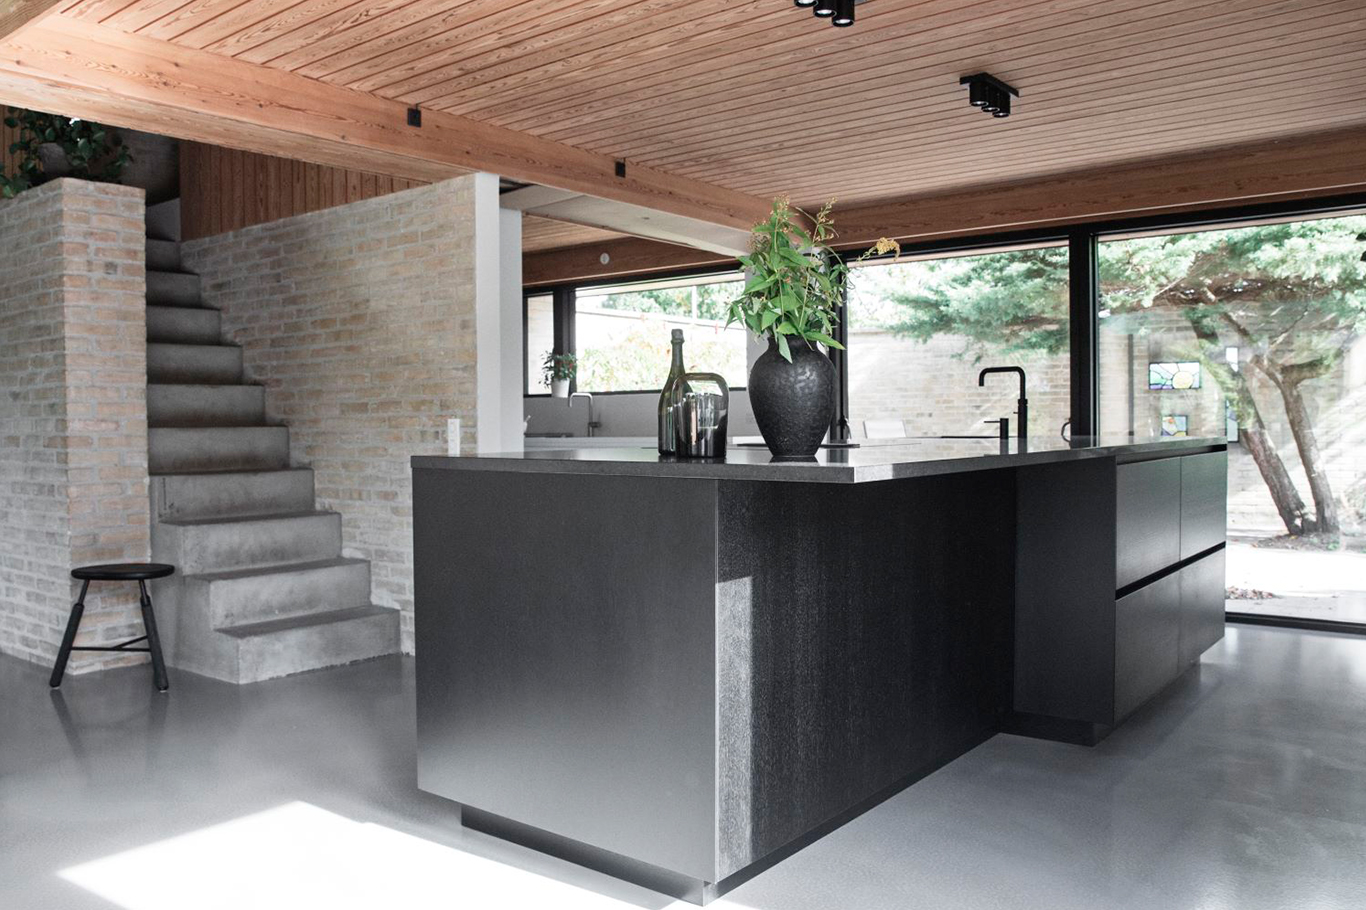 The bespoke kitchen has been designed by architect Piet Rose, Multiform Lyngby